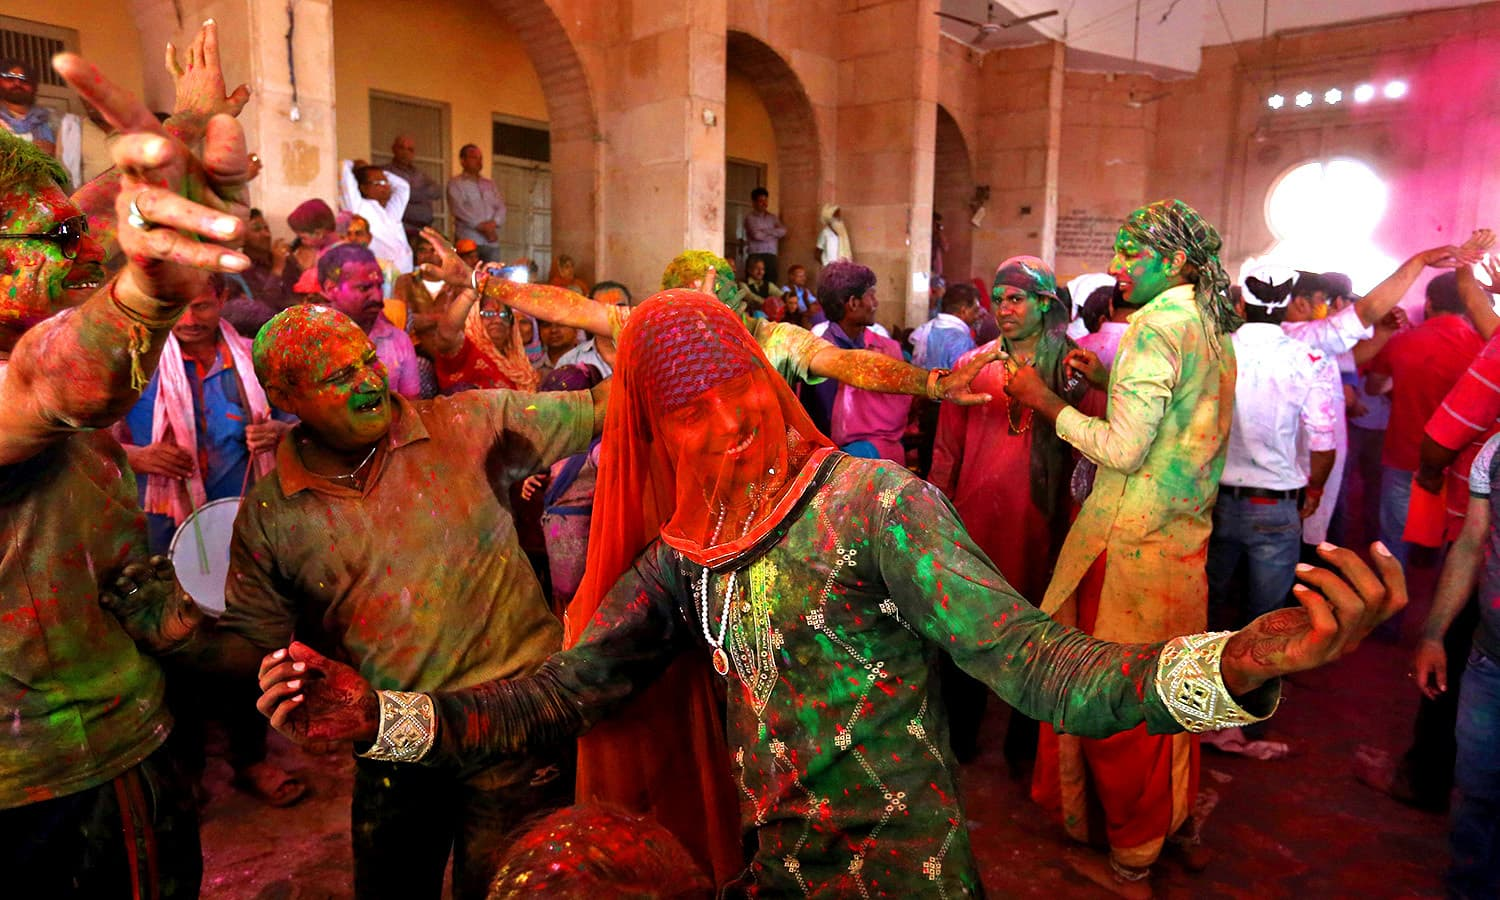 Hindu devotees take part in Holi in Barsana. ─ AFP